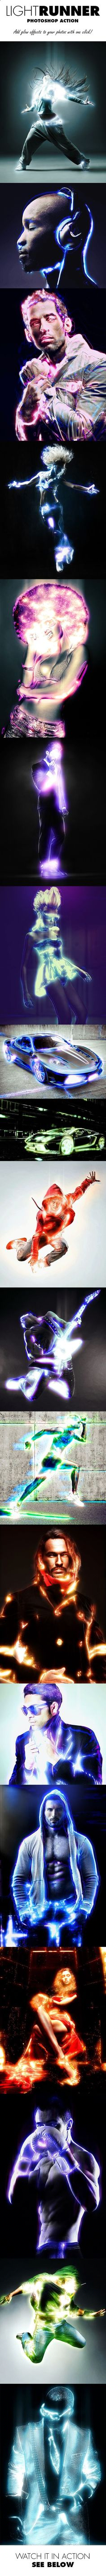 Light Runner Photoshop Action from GraphicRiver. Gives really cool glow effects and neon lighting to photos!!